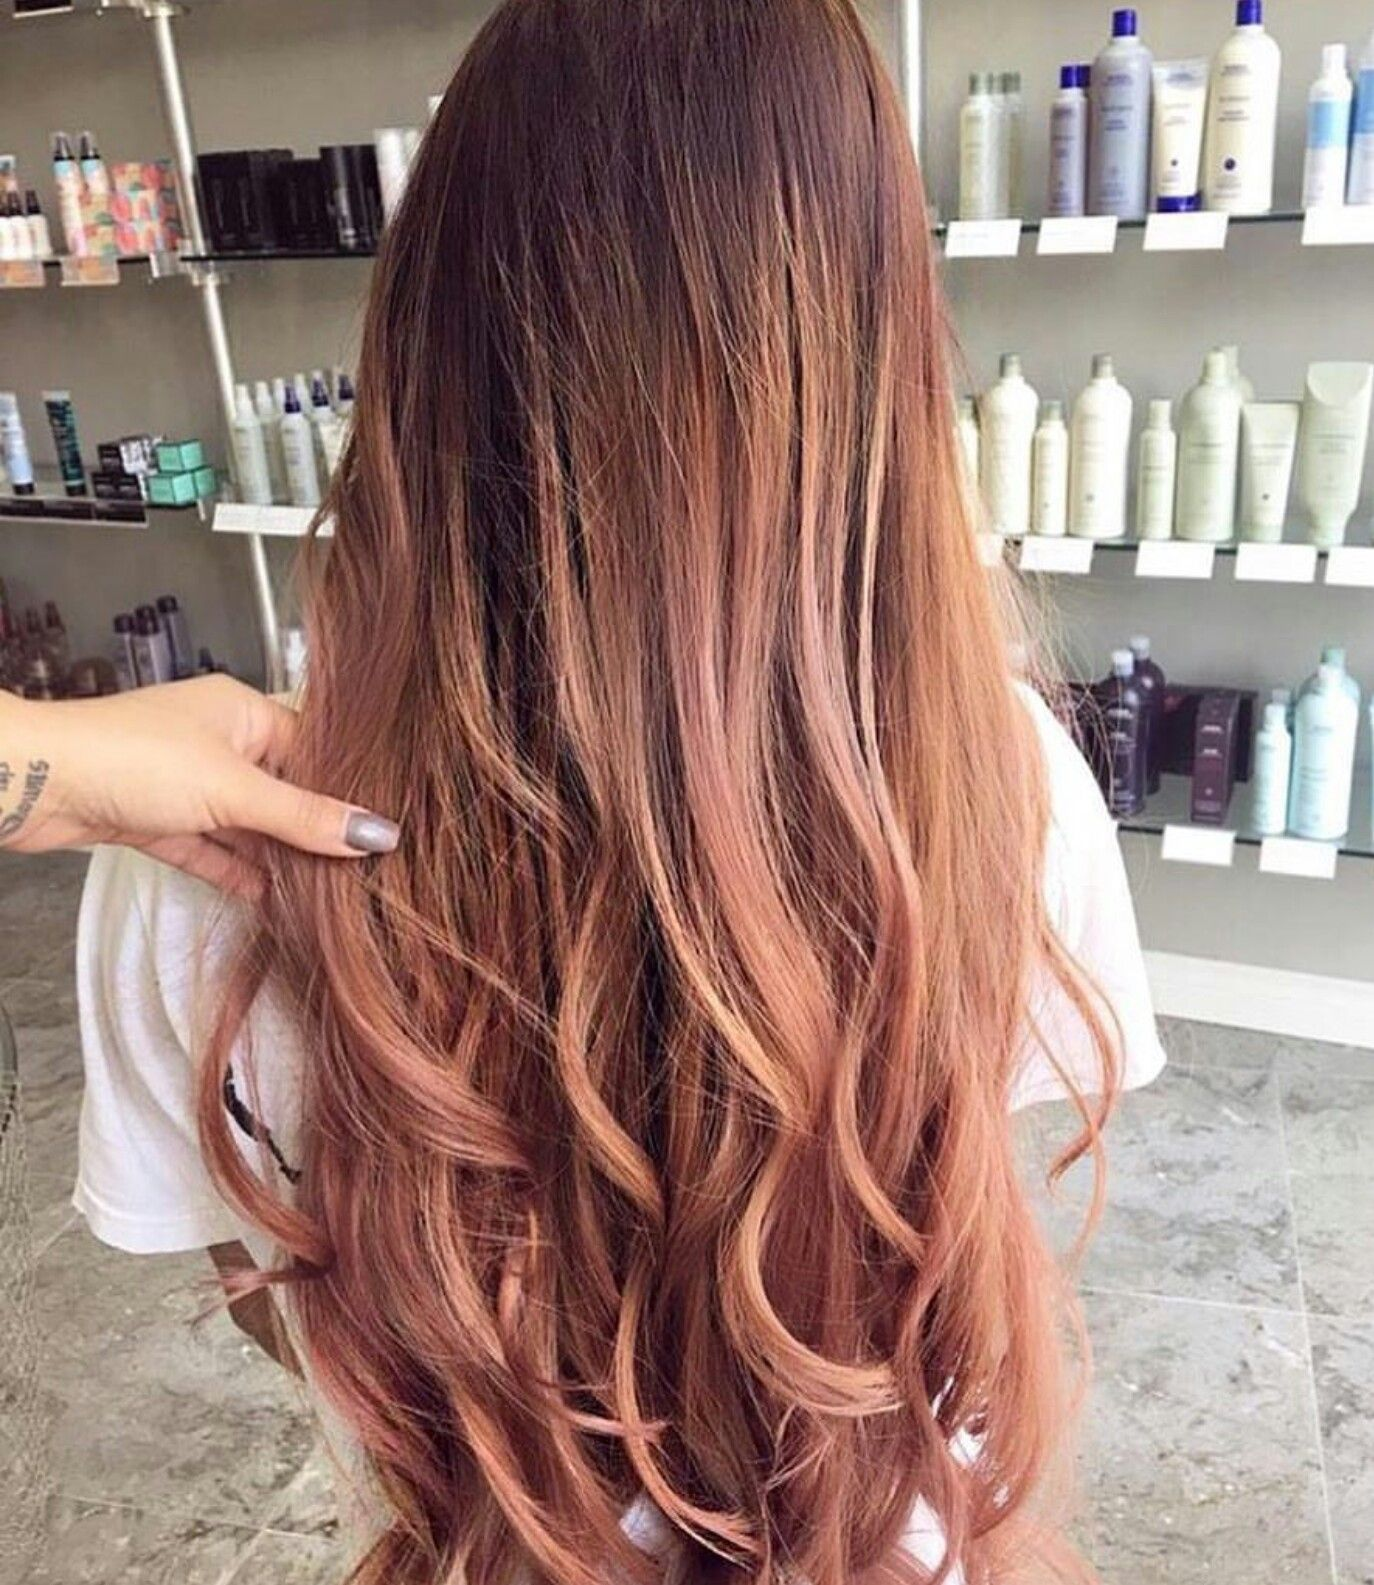 rose gold hair color styles pinterest hair coloring. Black Bedroom Furniture Sets. Home Design Ideas